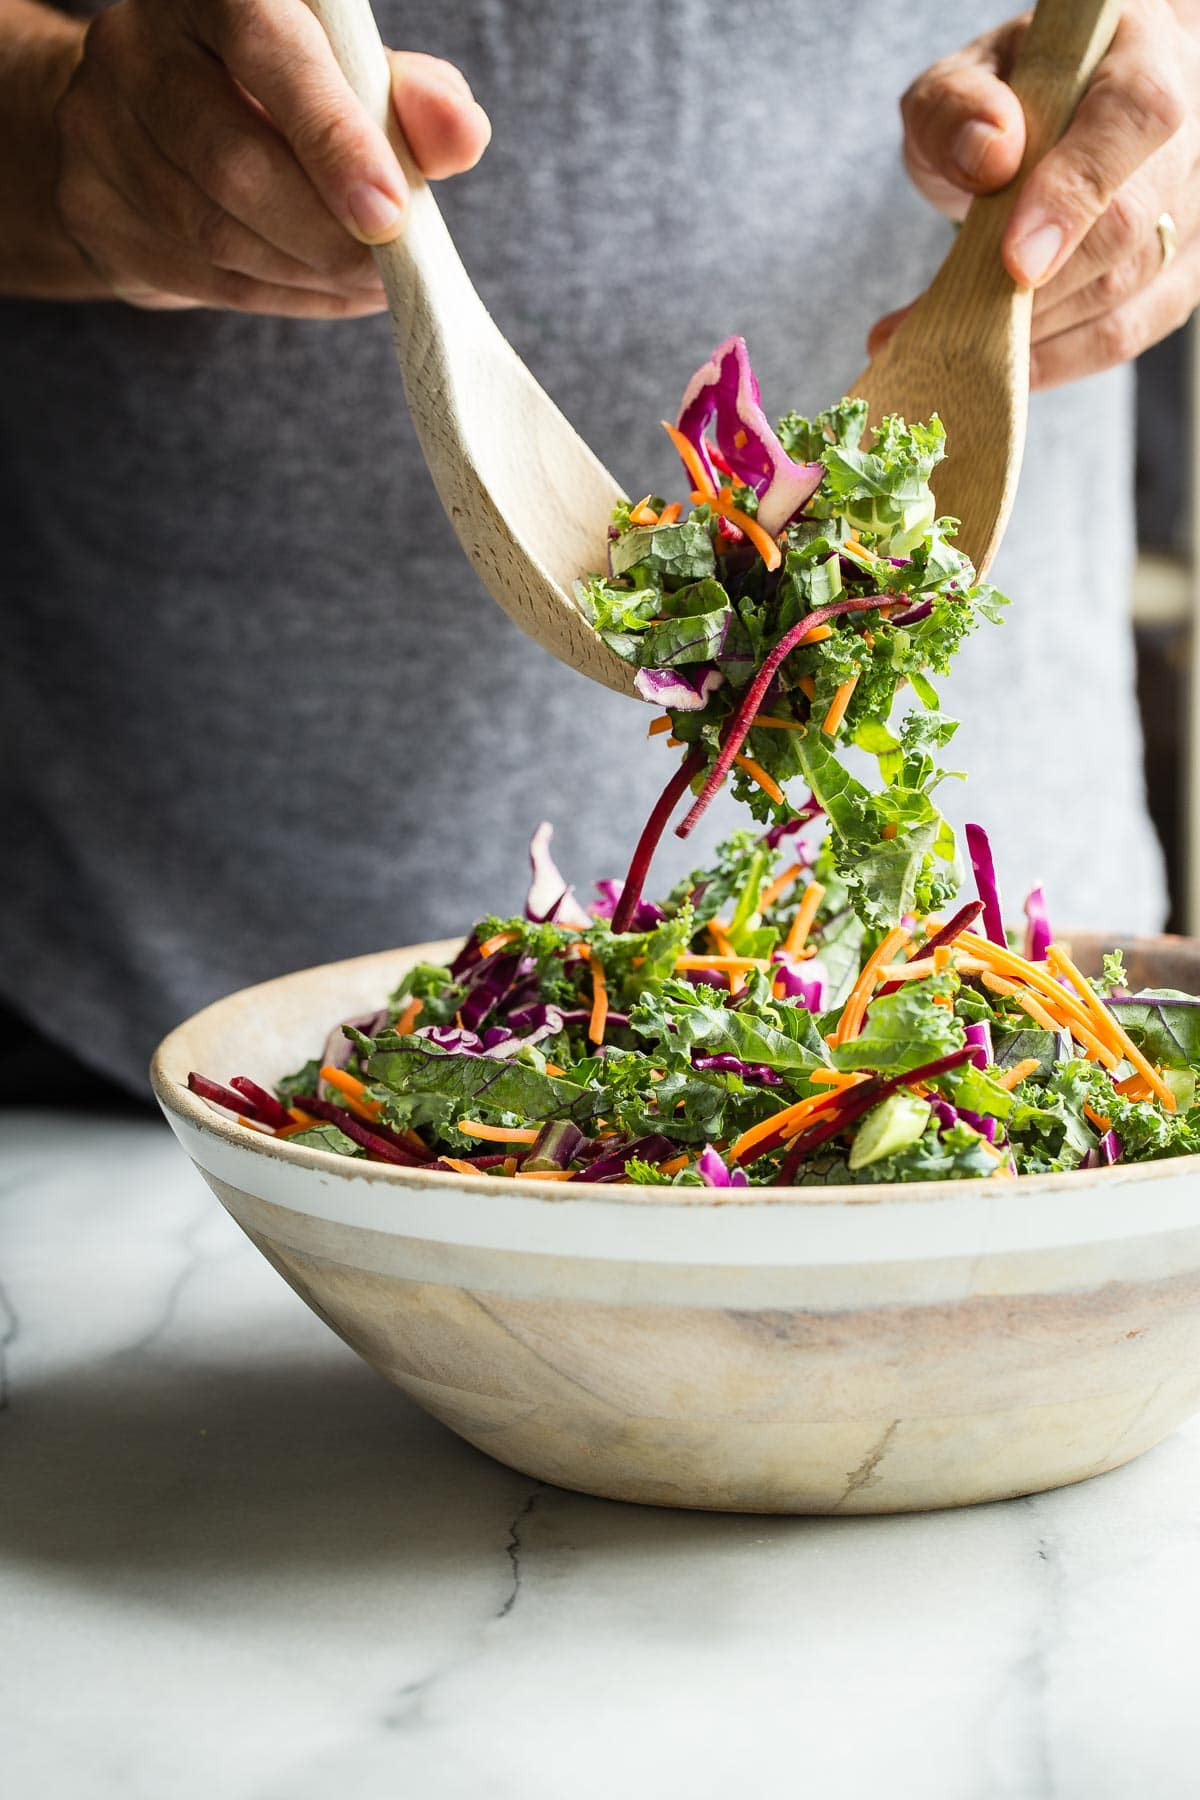 Kale Salad with Beets Carrots and Grilled Tofu